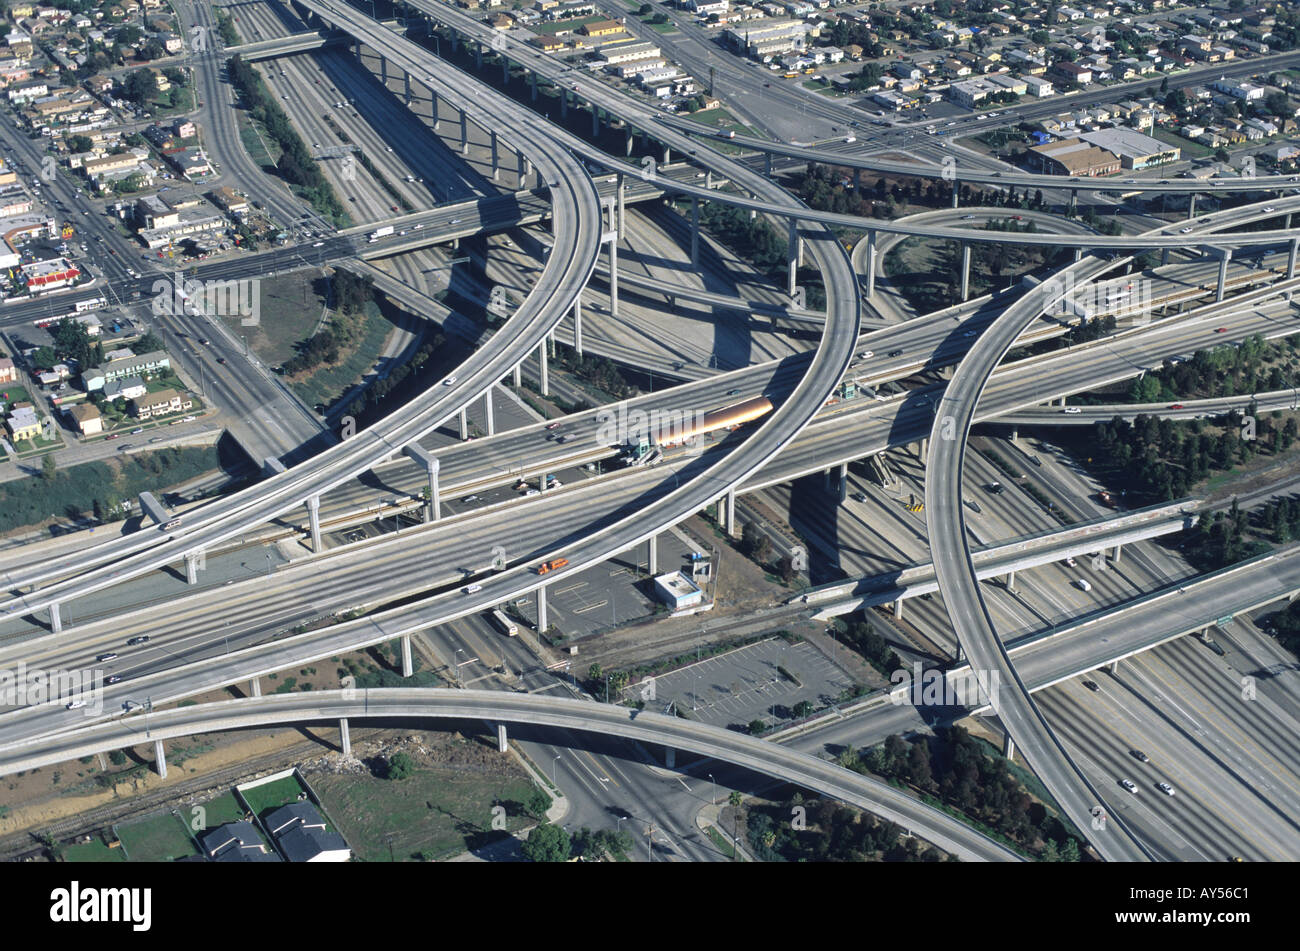 105 110 freeway interchange in Los Angeles California Stock